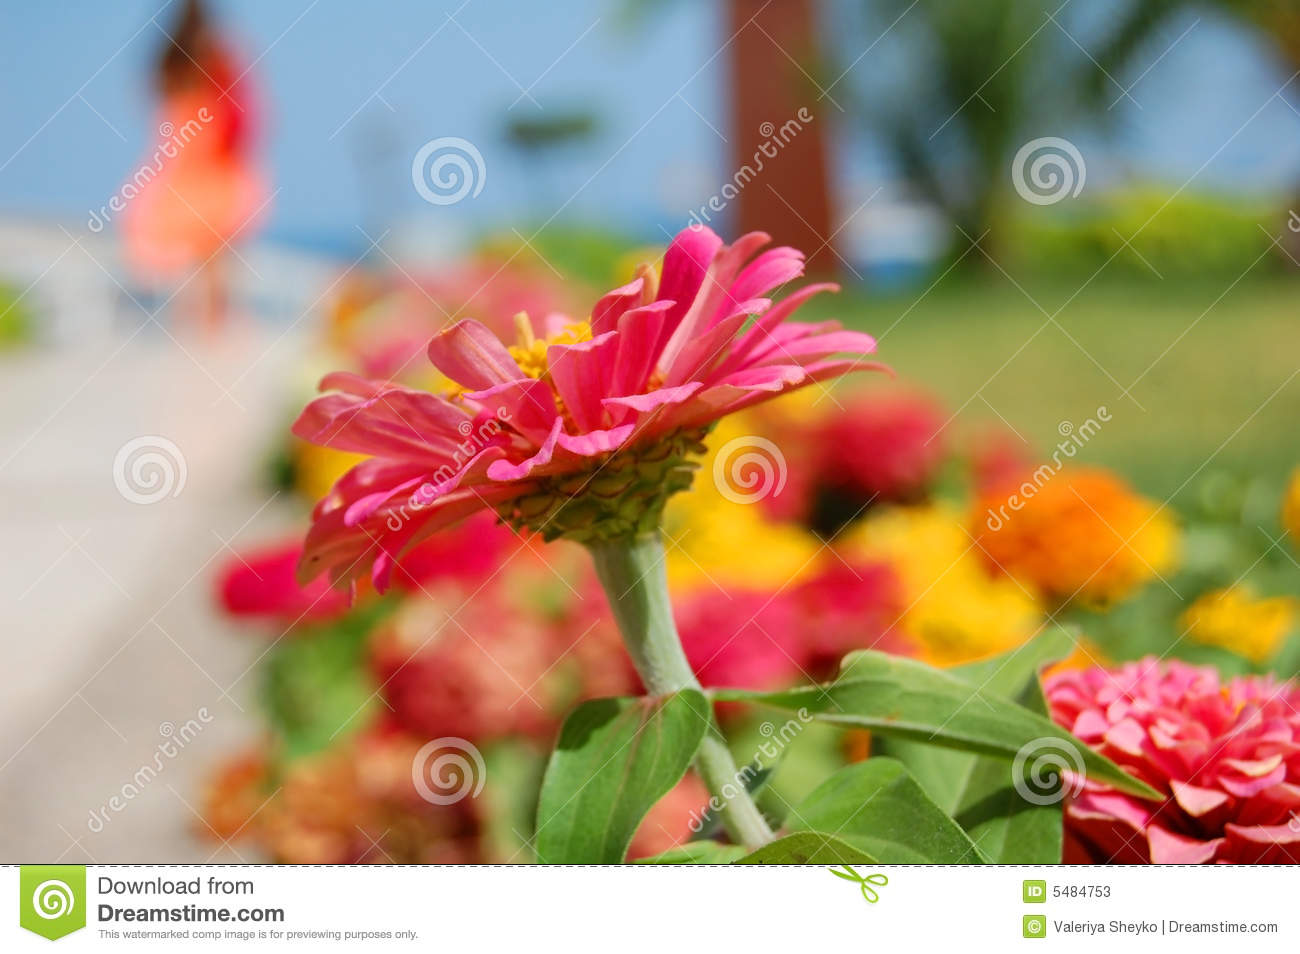 Summer vacations - catchy flower and a girl silhouette